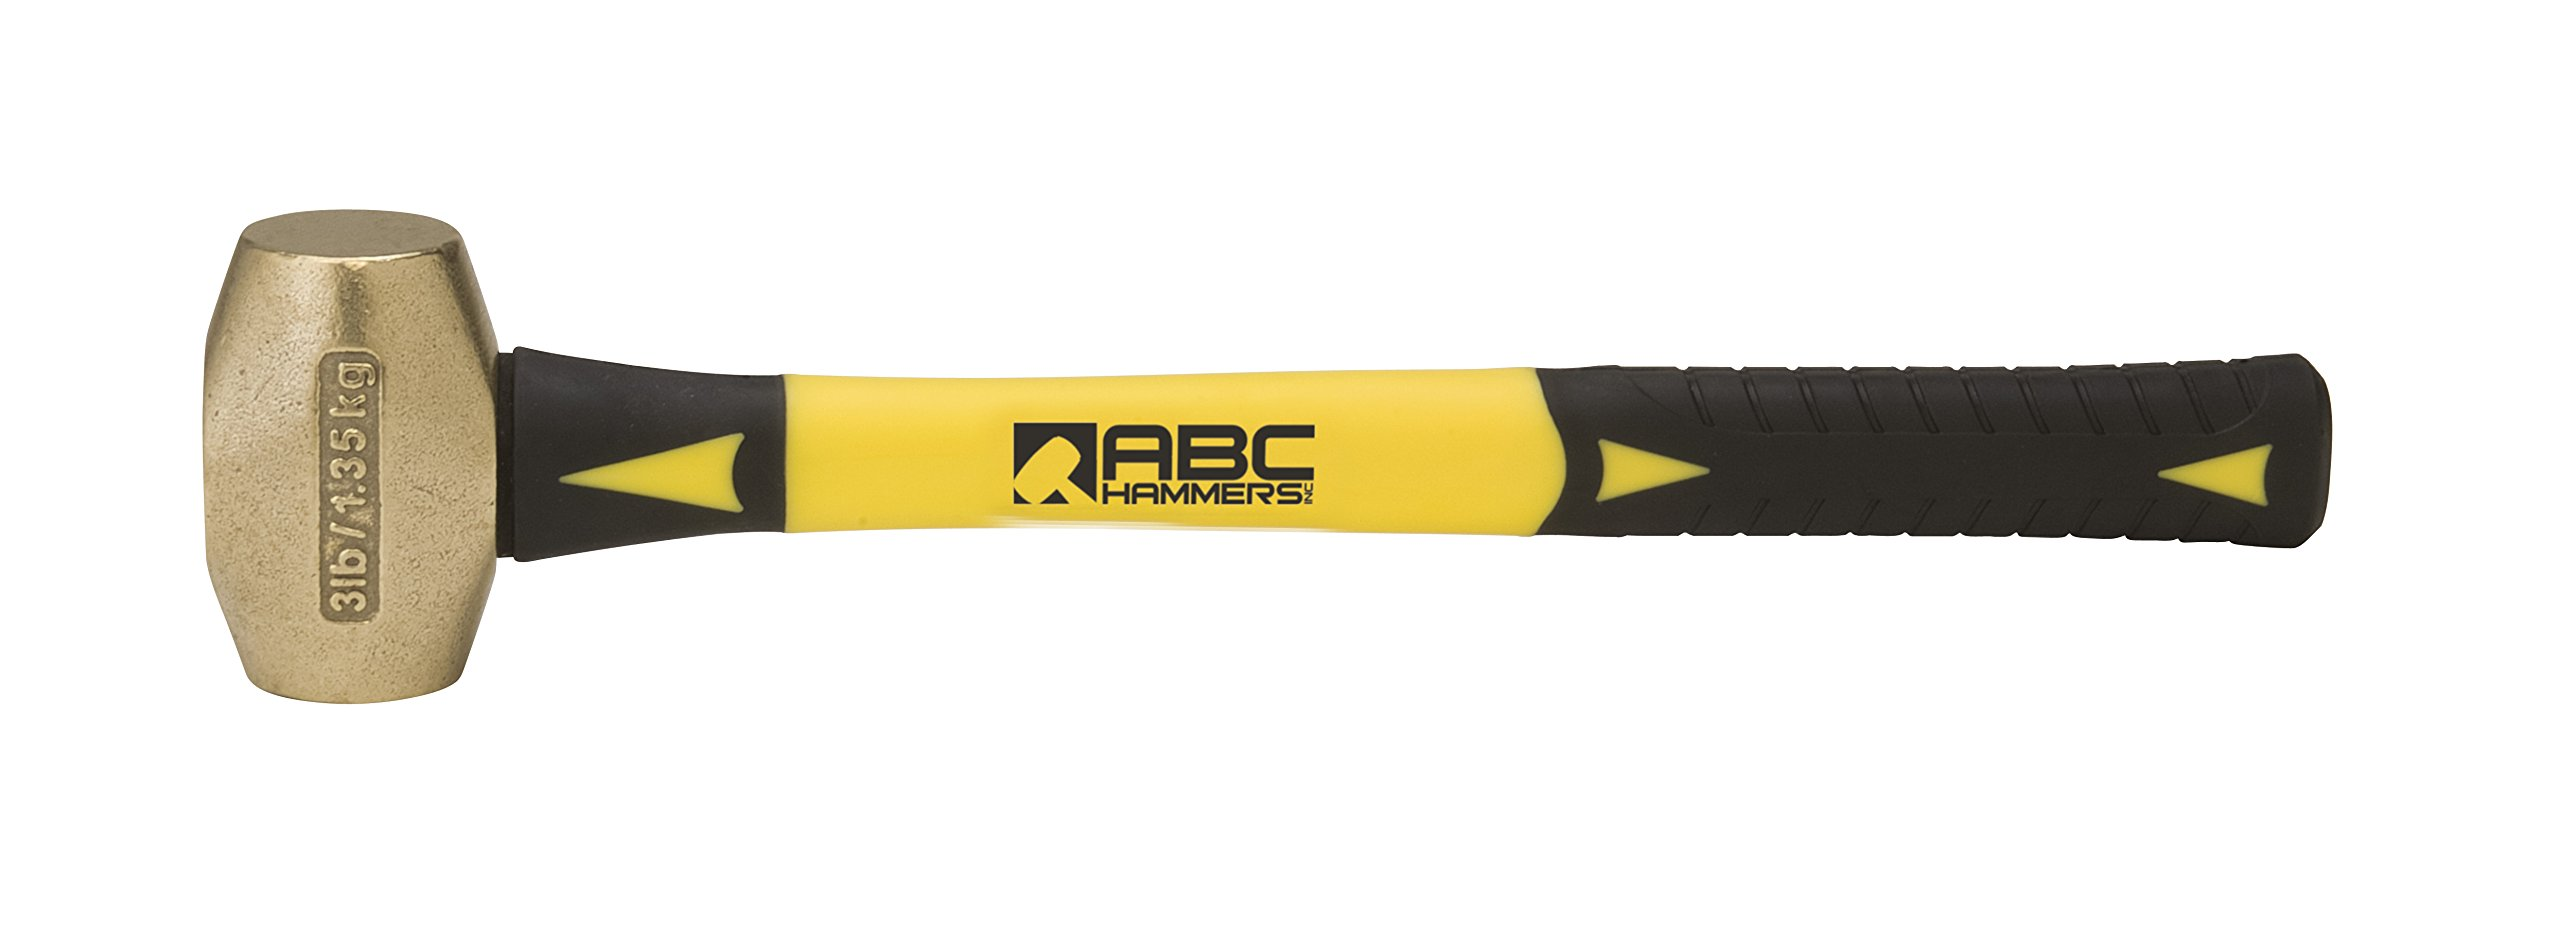 ABC Hammers ABC3BF Brass Hammer with 14-Inch Fiberglass Handle, 3-Pound by ABC Hammers